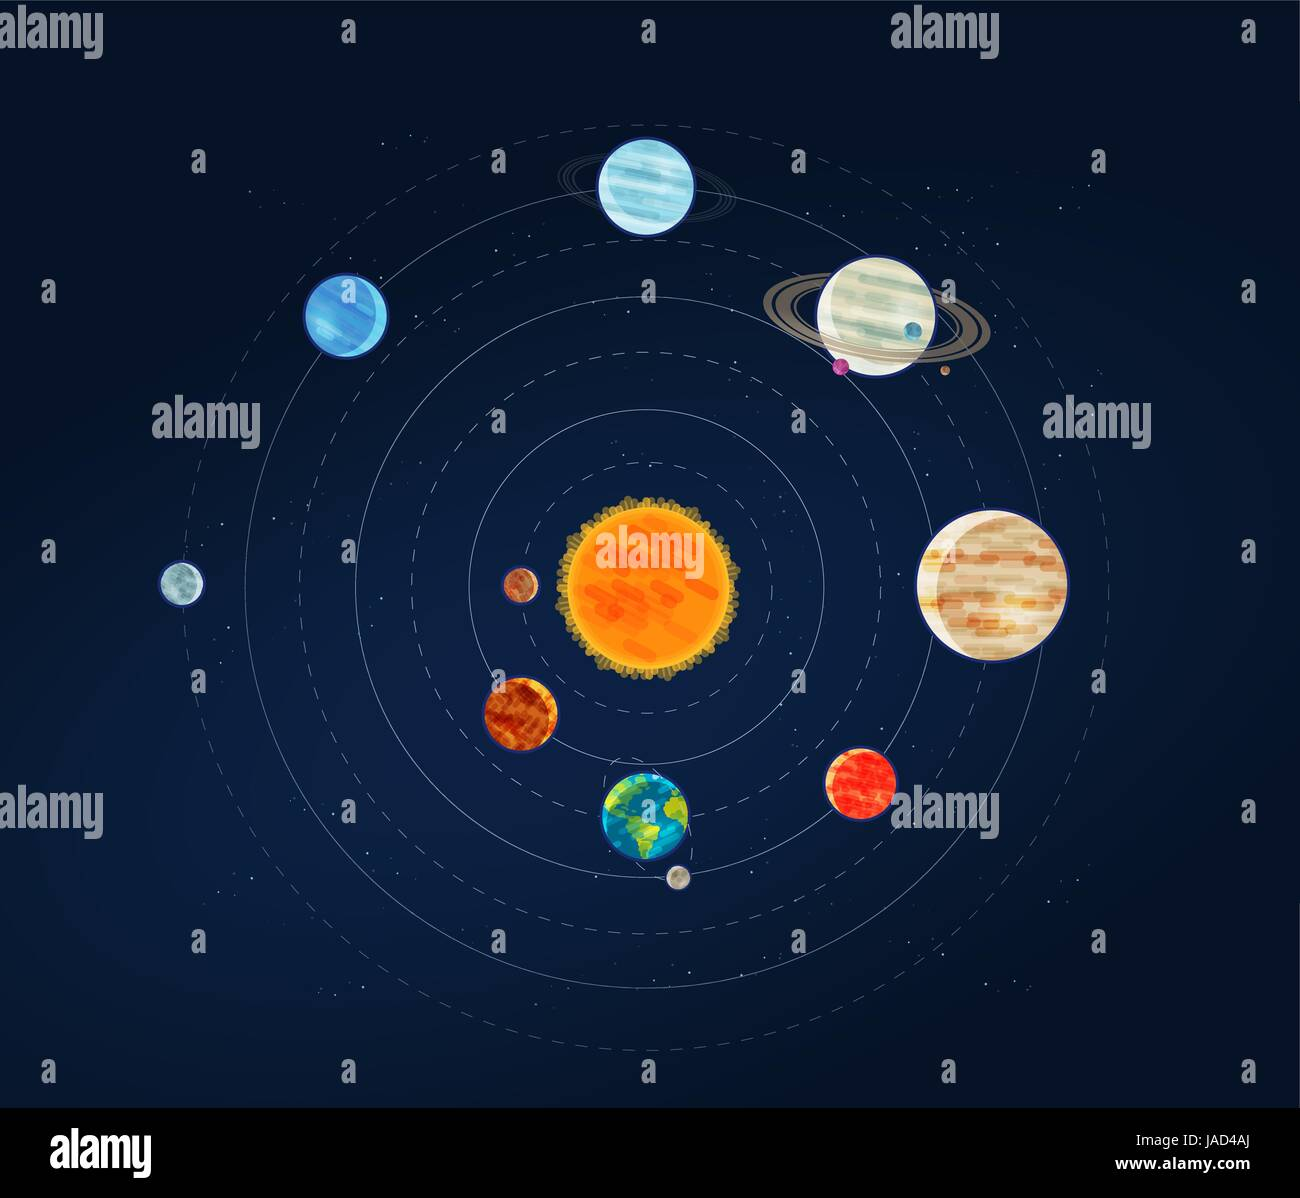 Solar system galaxy infographic space astronomy planets and stars stock vector art - Galaxy and planets ...